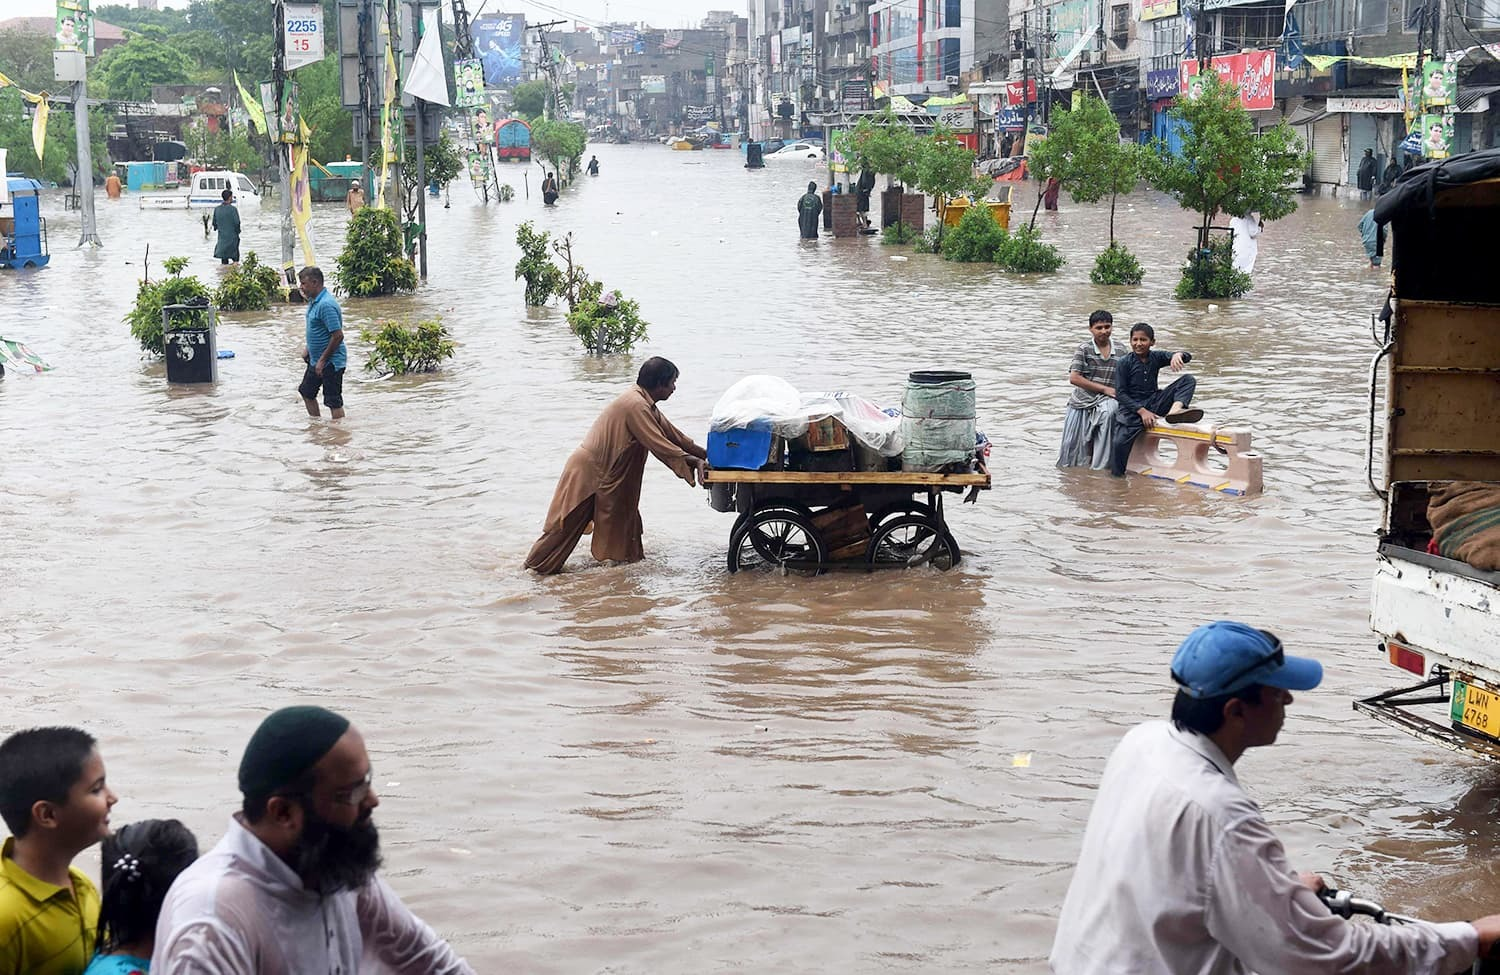 FFC says urban flooding in Rawalpindi, Faisalabad, Gujranwala and Lahore districts cannot be ruled out. — APP/File